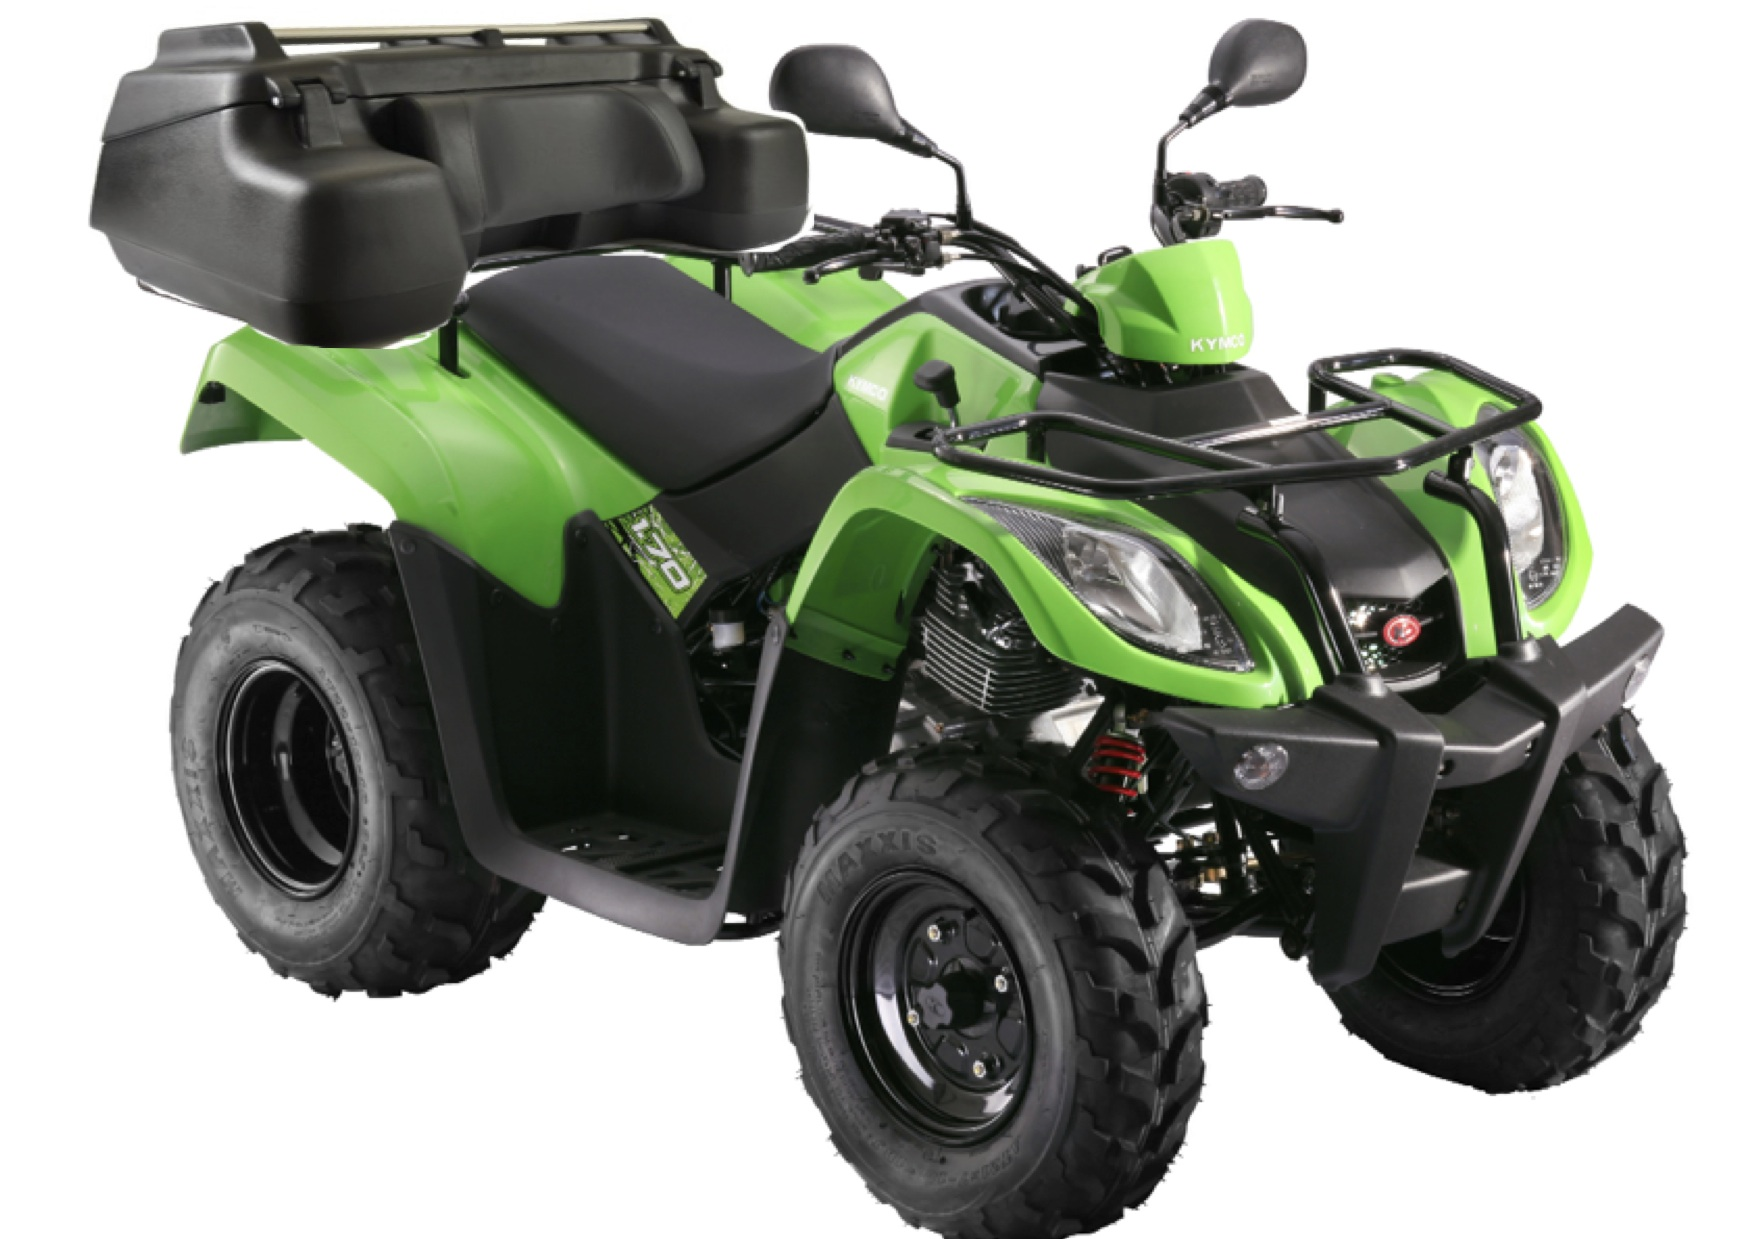 KYMCO QUAD 170 cc 4 wheel